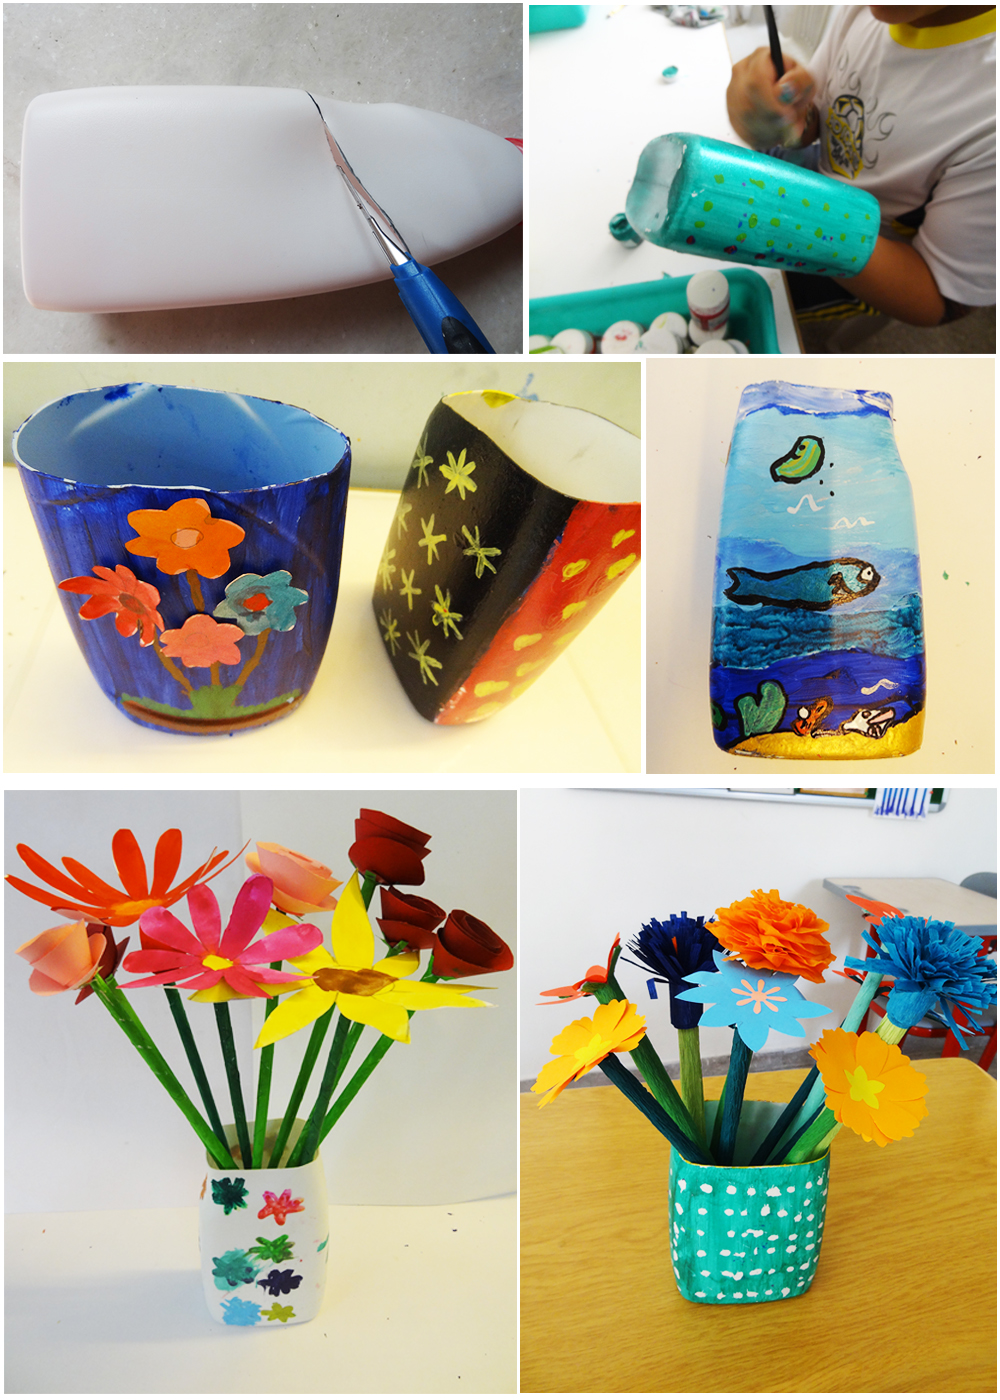 Flower vase out of plastic bottle acrylic paints including the metallic versions were used to paint patterns and other designs paper cutouts using pattern punches and 3d glitter reviewsmspy